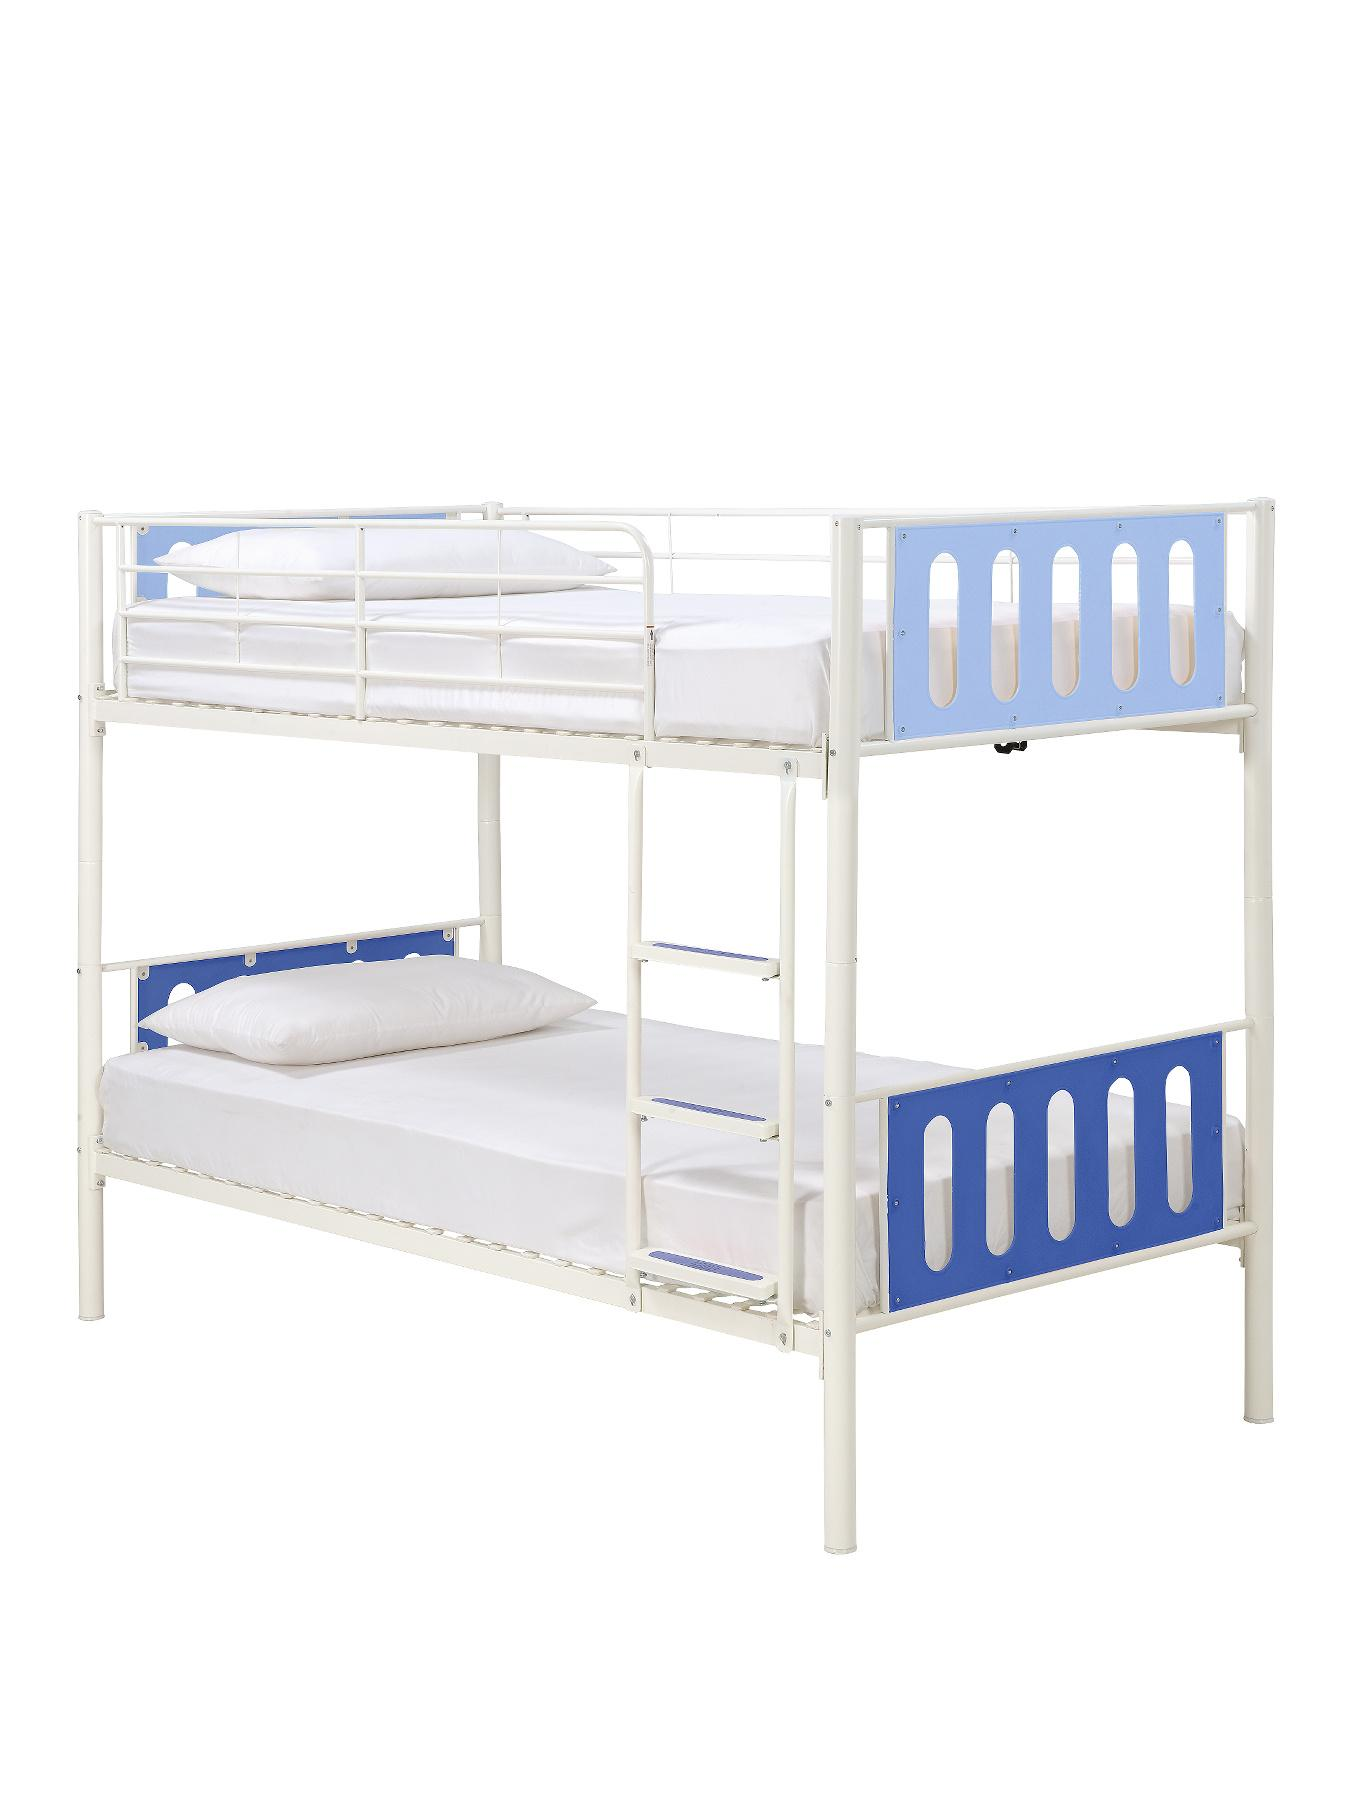 kidspace cyber bunk bed frame 1